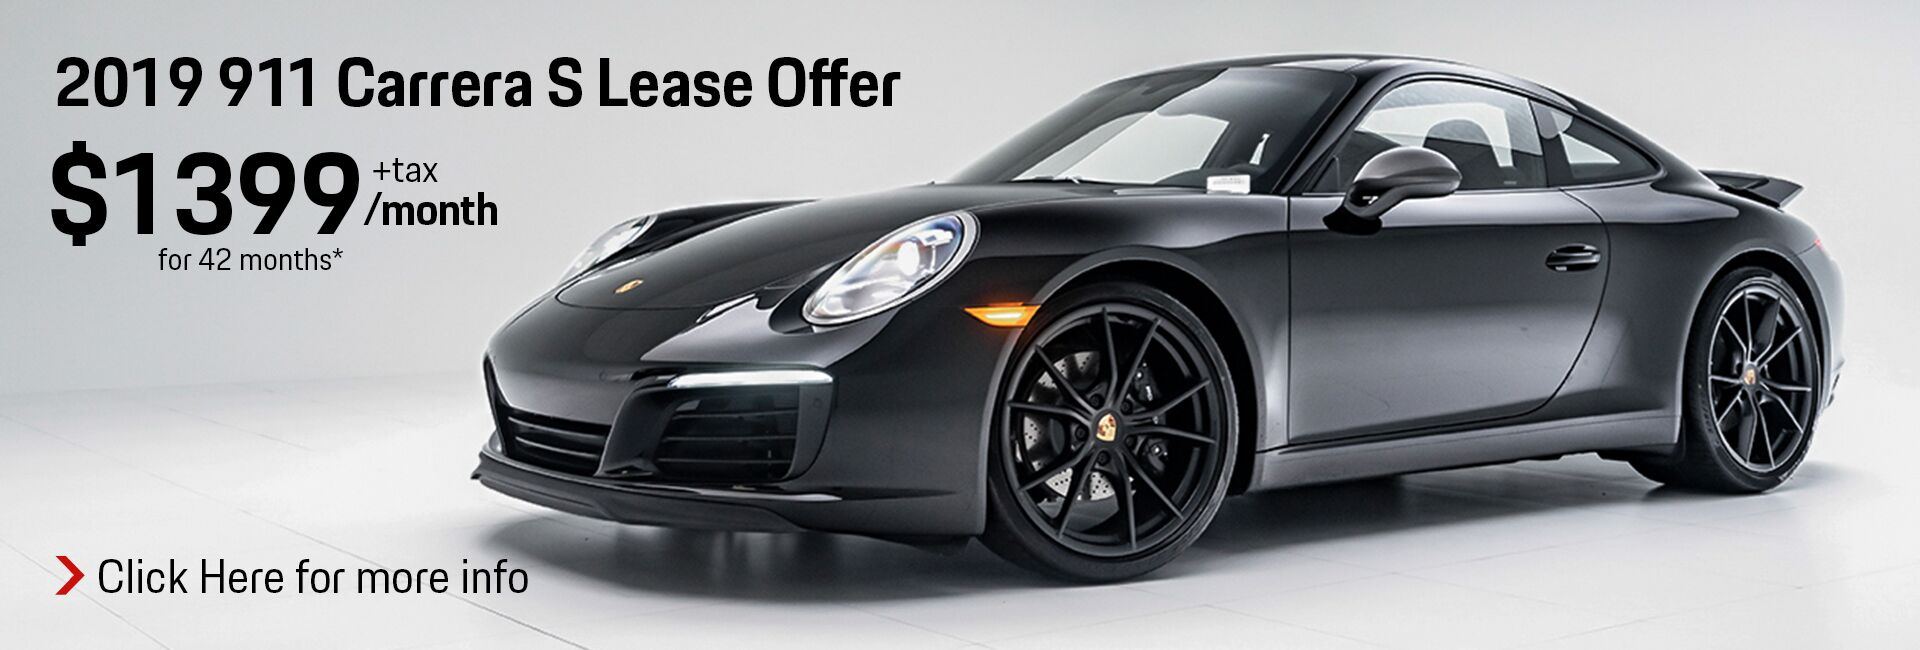 2019 911 Carrera S Lease Offer